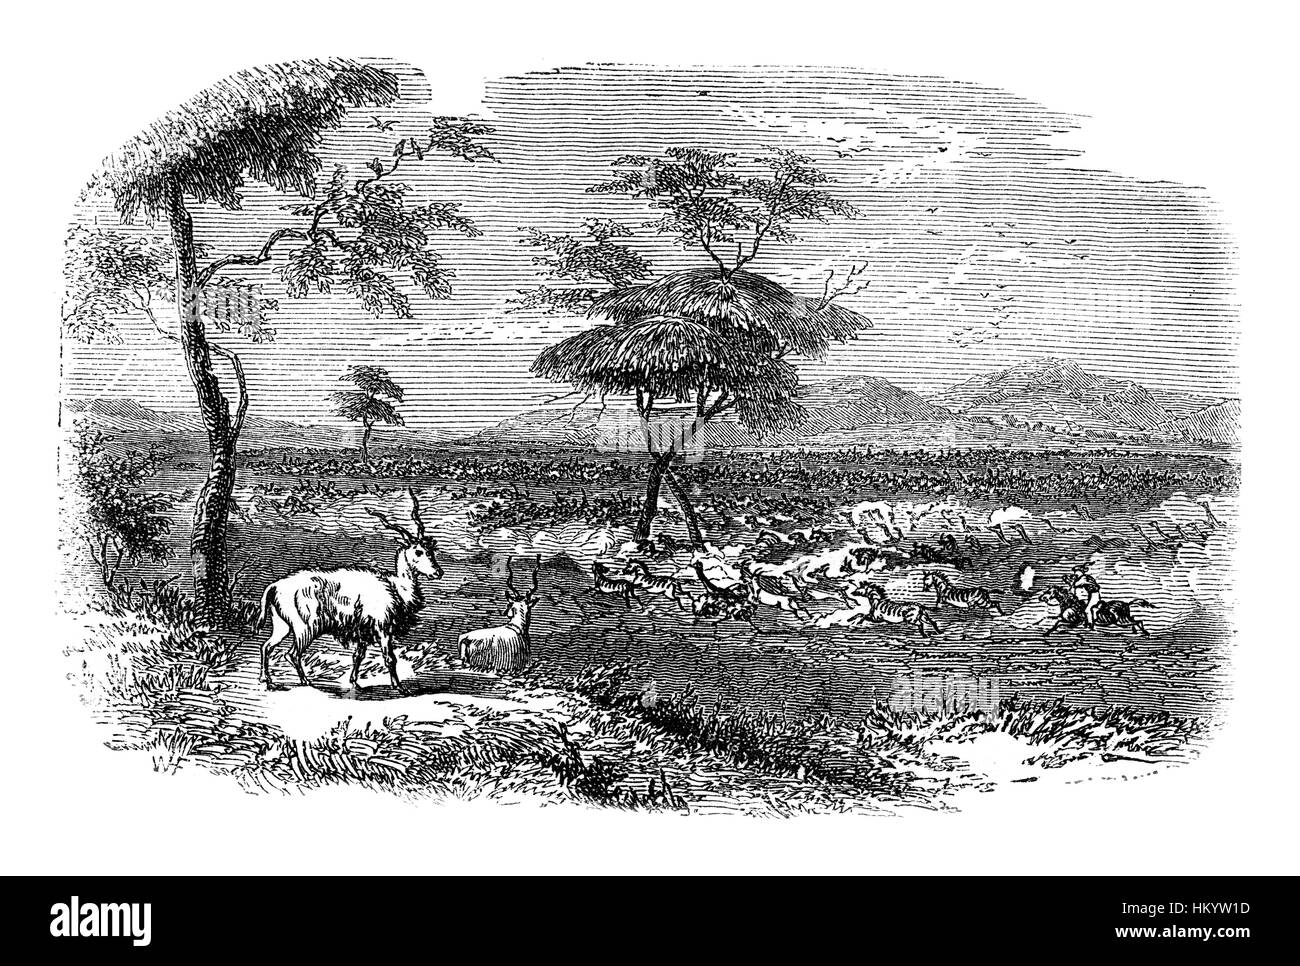 African landscape with animals. 19th century Engraving from 'Popular Natural History' published in 1866. - Stock Image